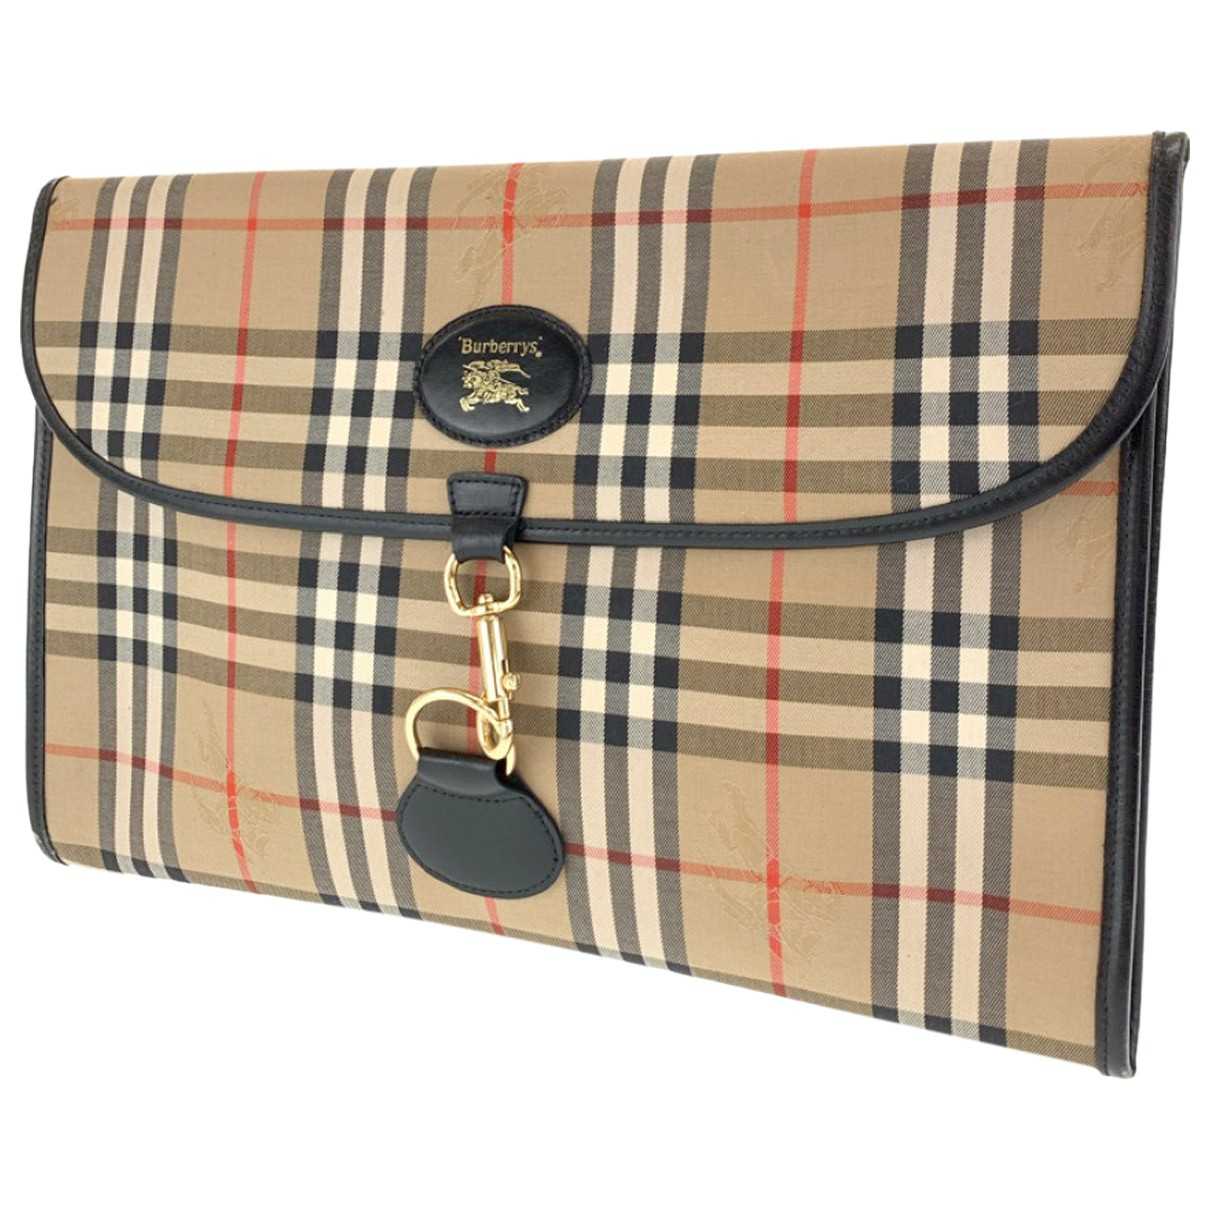 Marroquineria de Lona Burberry